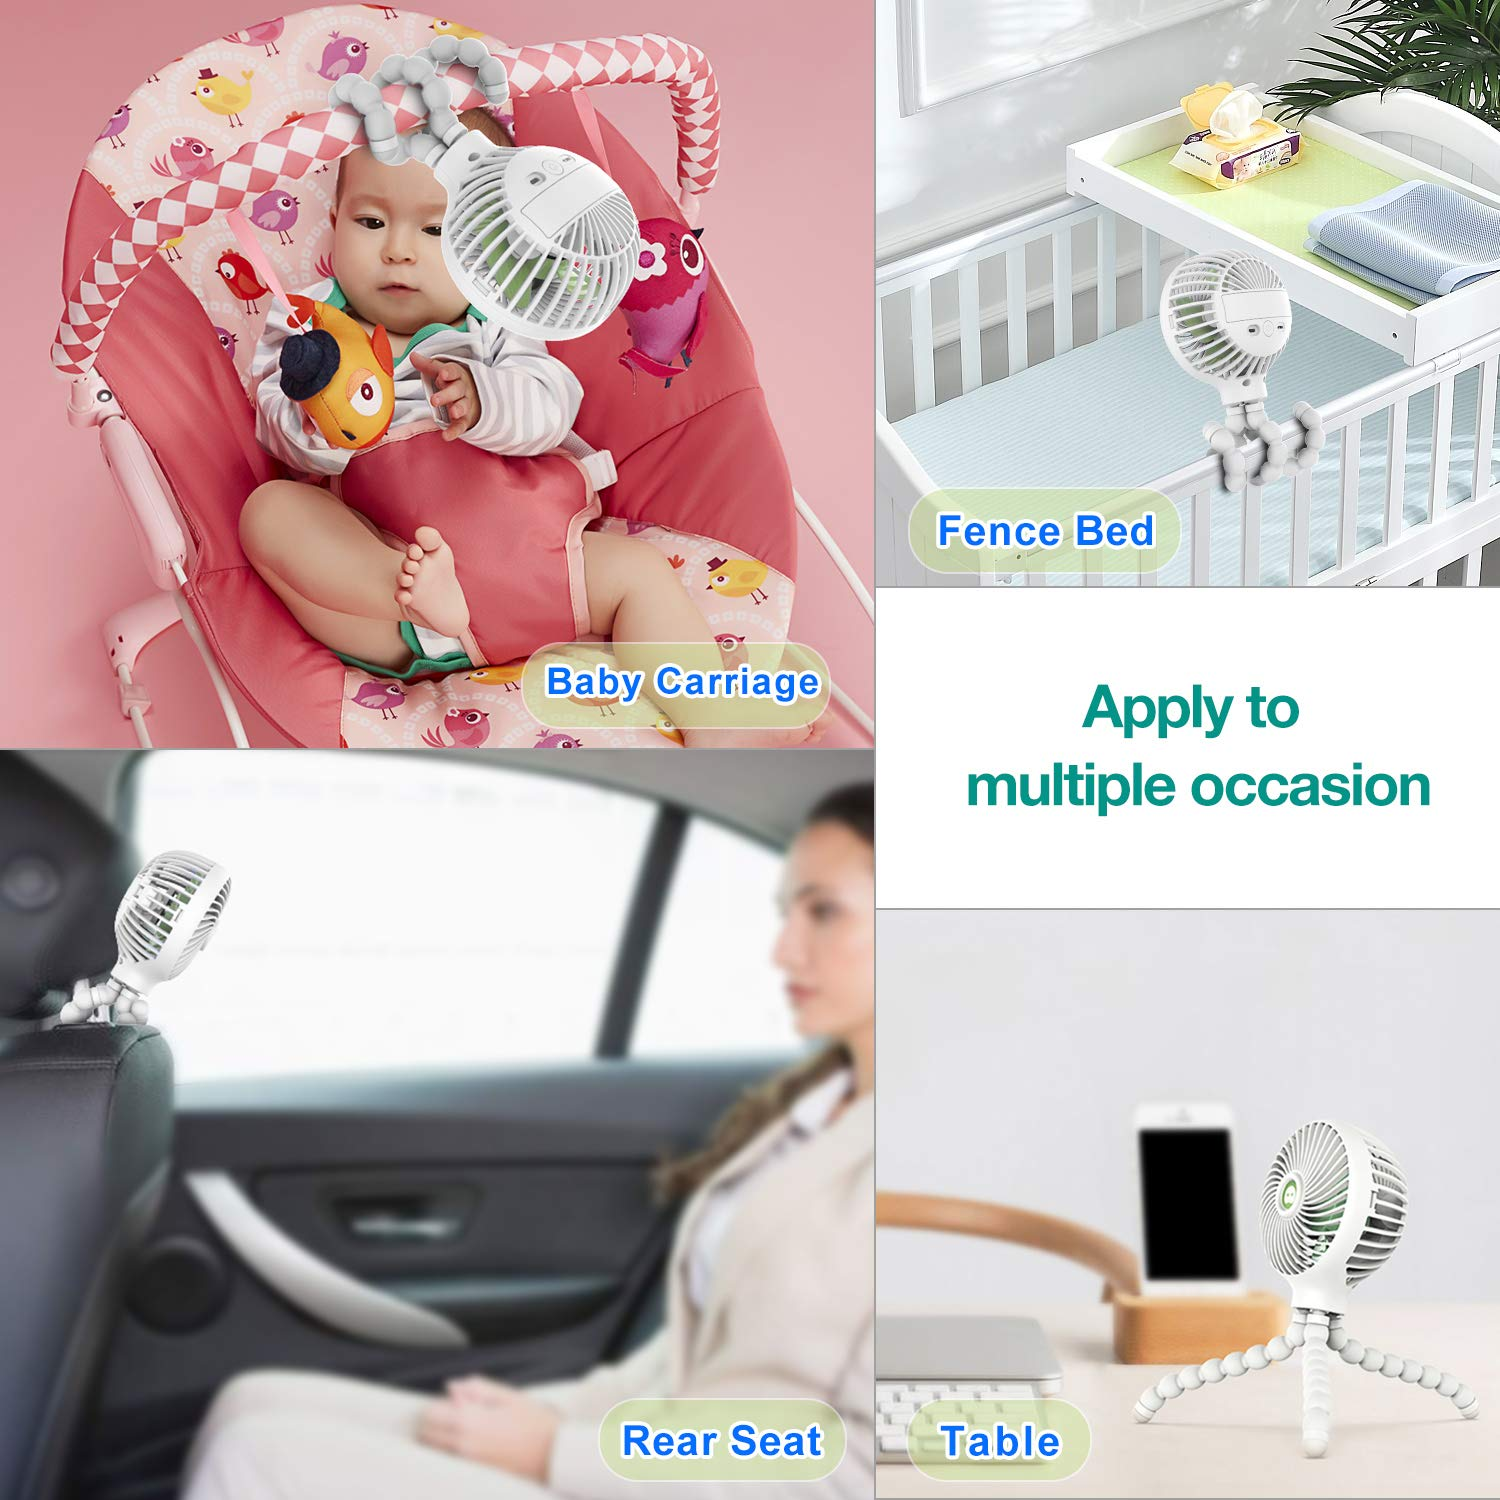 Mini Handheld Stroller Fan, TRELC Personal Portable Baby Fan with Flexible Tripod, Gift for Children, Rechargeable Fan for Office Room Car Traveling BBQ Gym Fan with 3 Settings (White) by TRELC (Image #6)